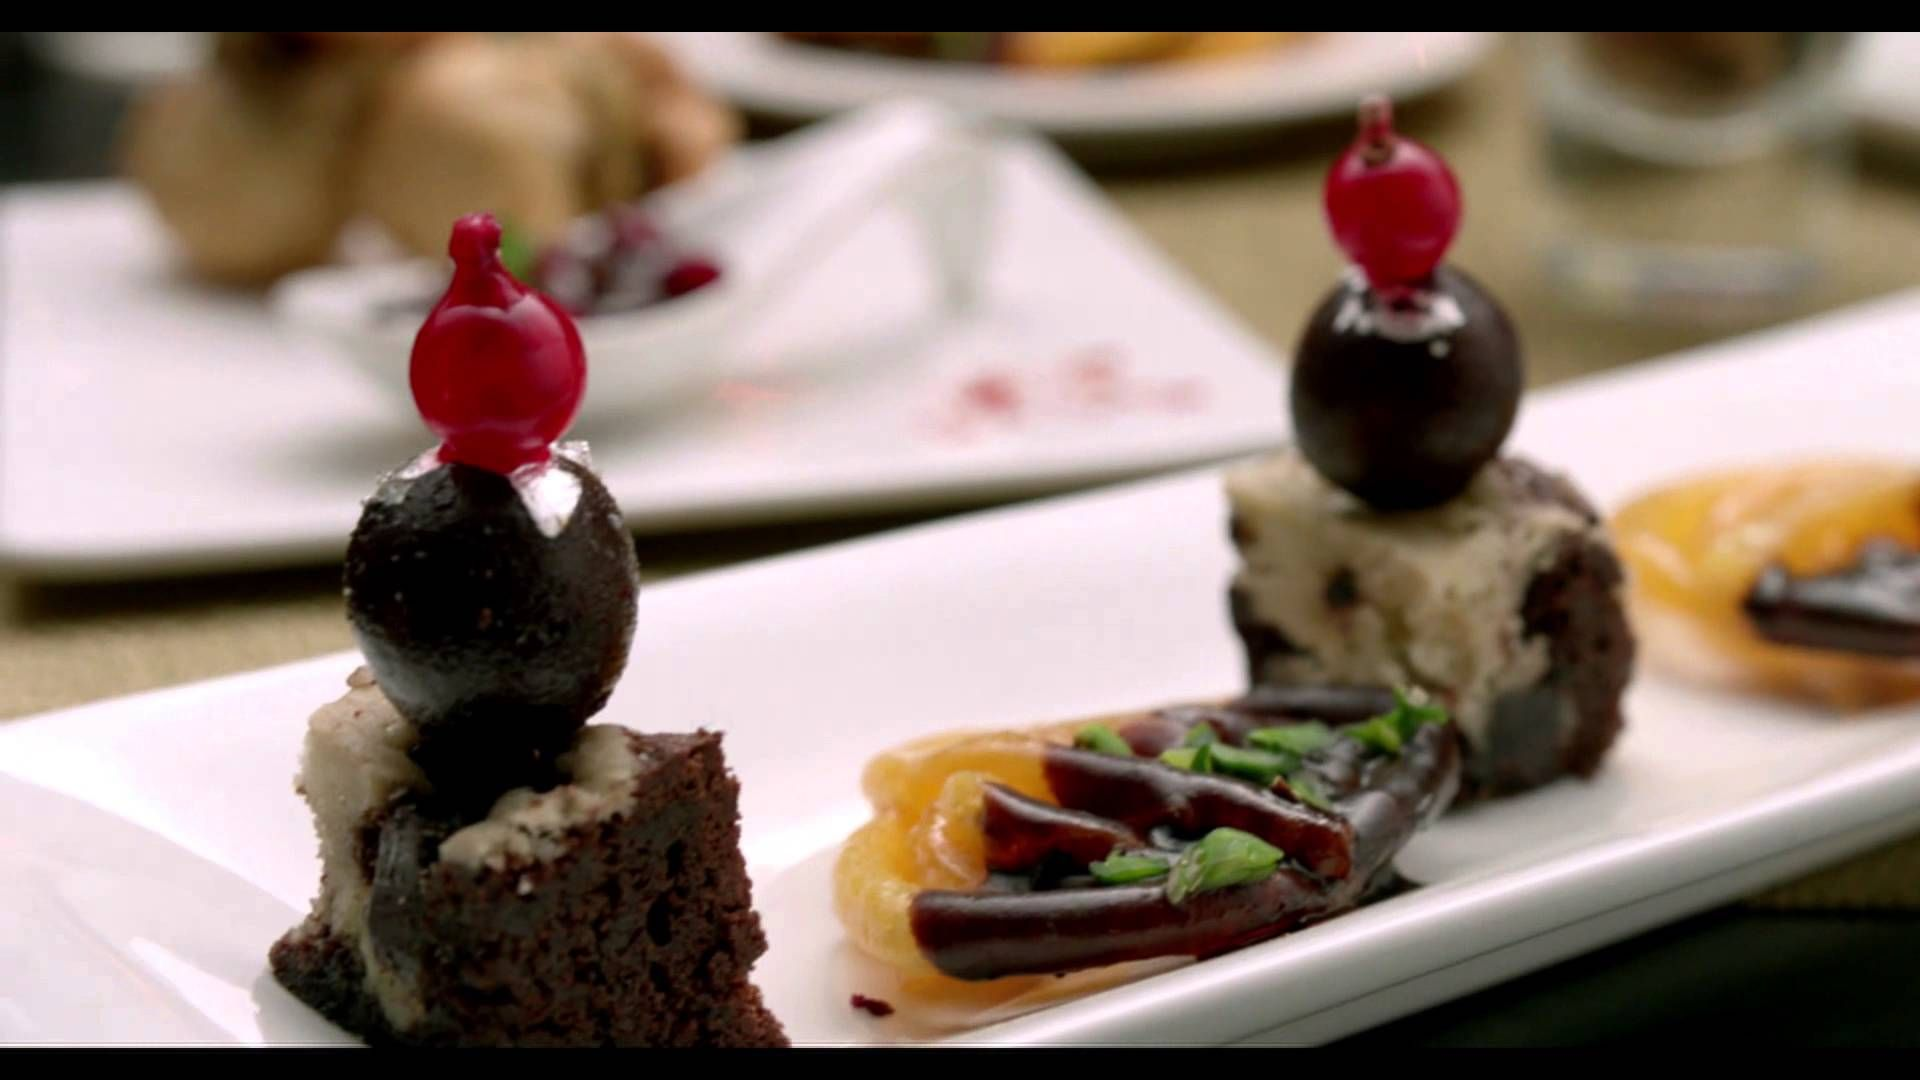 East End Diwali Film   I loved working as a #FoodStylist on this awesome #TV #ad. #FoodPhotography #FoodVideography scenes.Let's connect for such #Foodstyling magic to happen for your brand. design@chefpayalgupta.com or visit www.chefpayalgupta.com